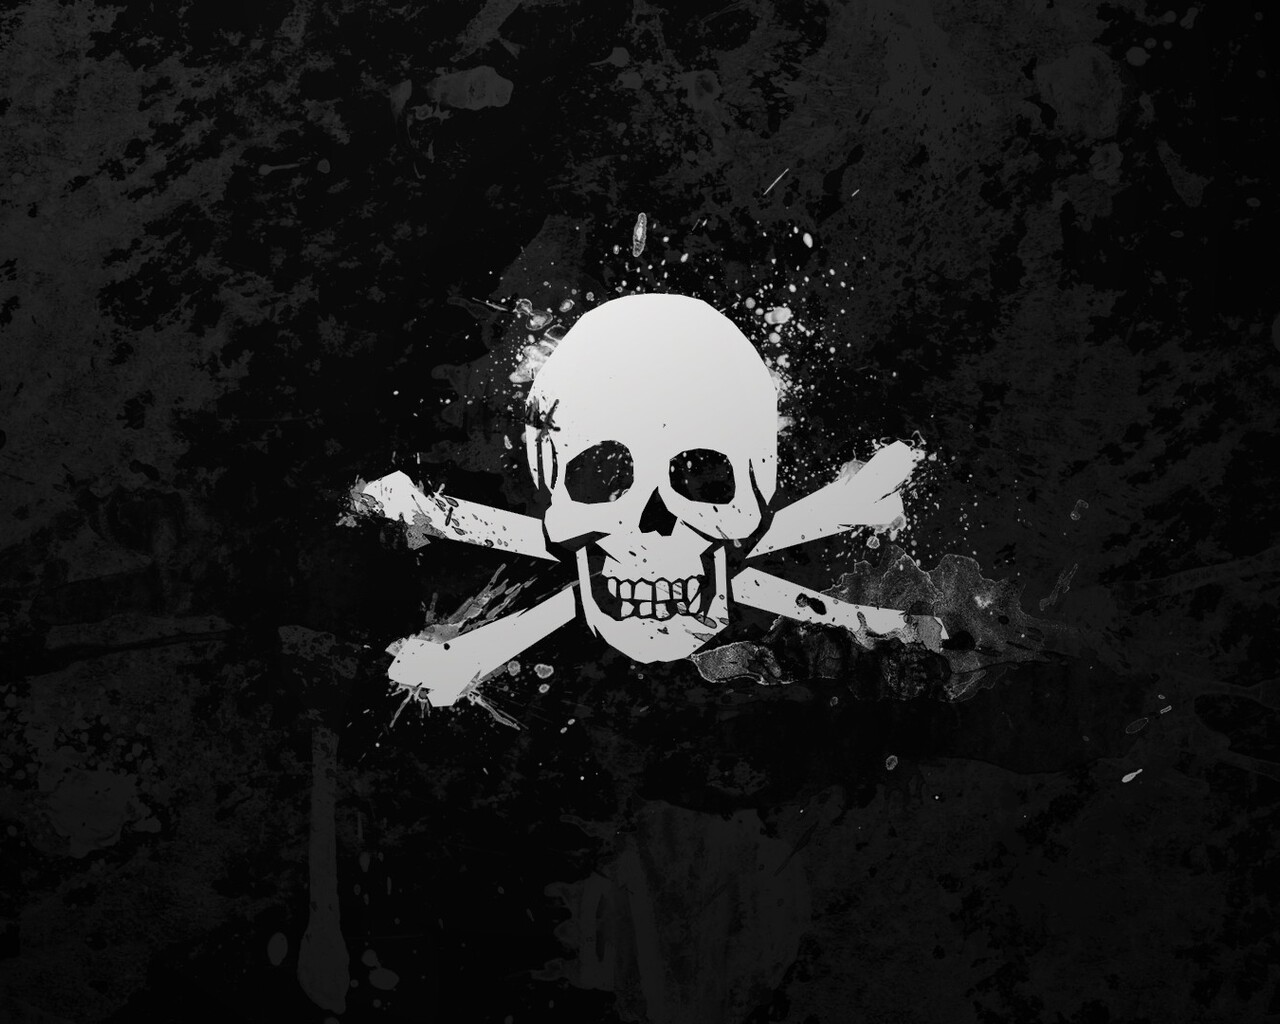 1280x1024 Skull Black And White 1280x1024 Resolution Hd 4k